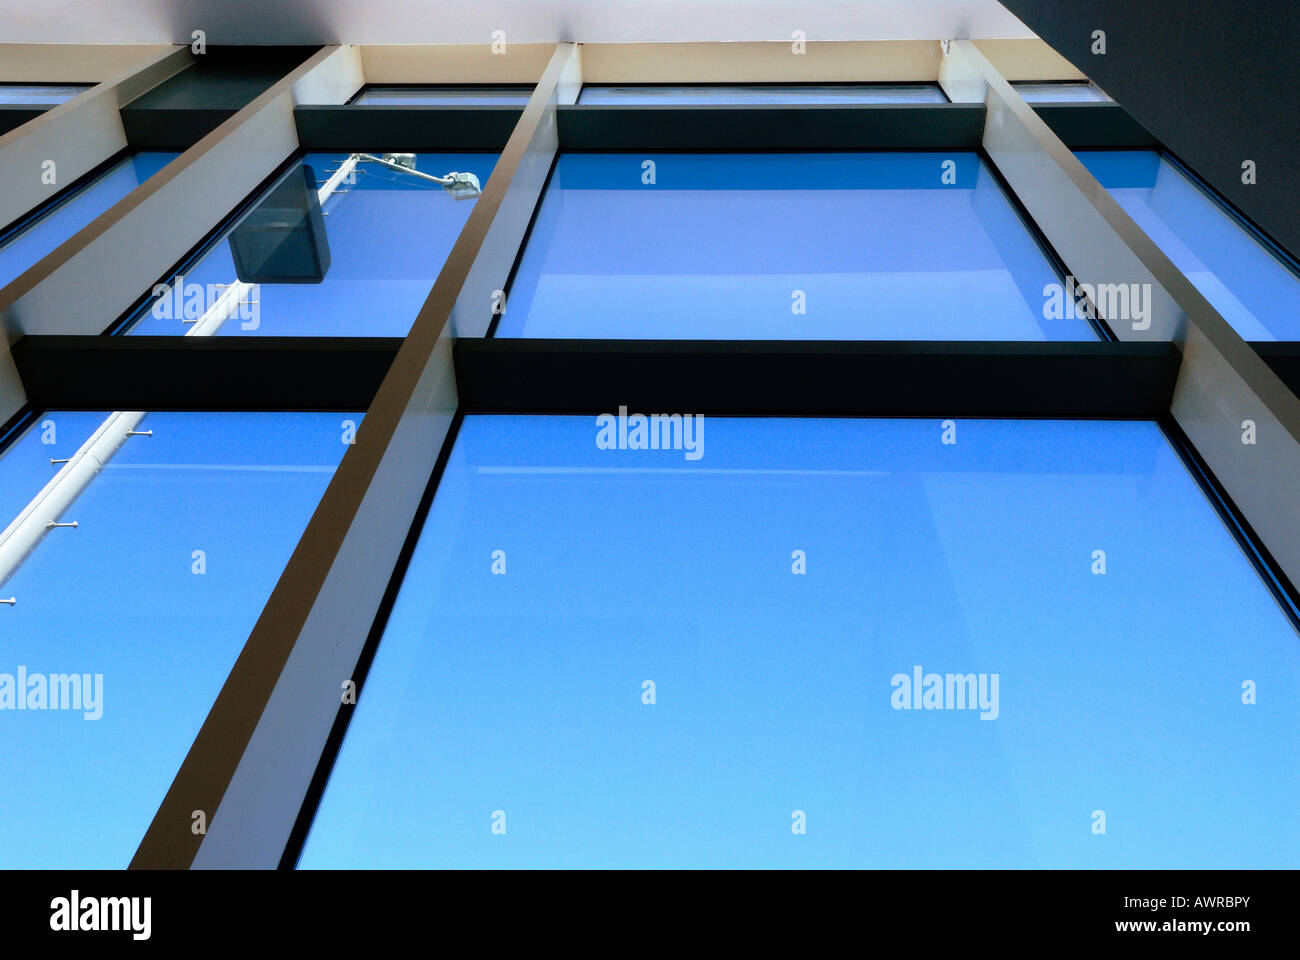 large Commercial Building windows - Stock Image